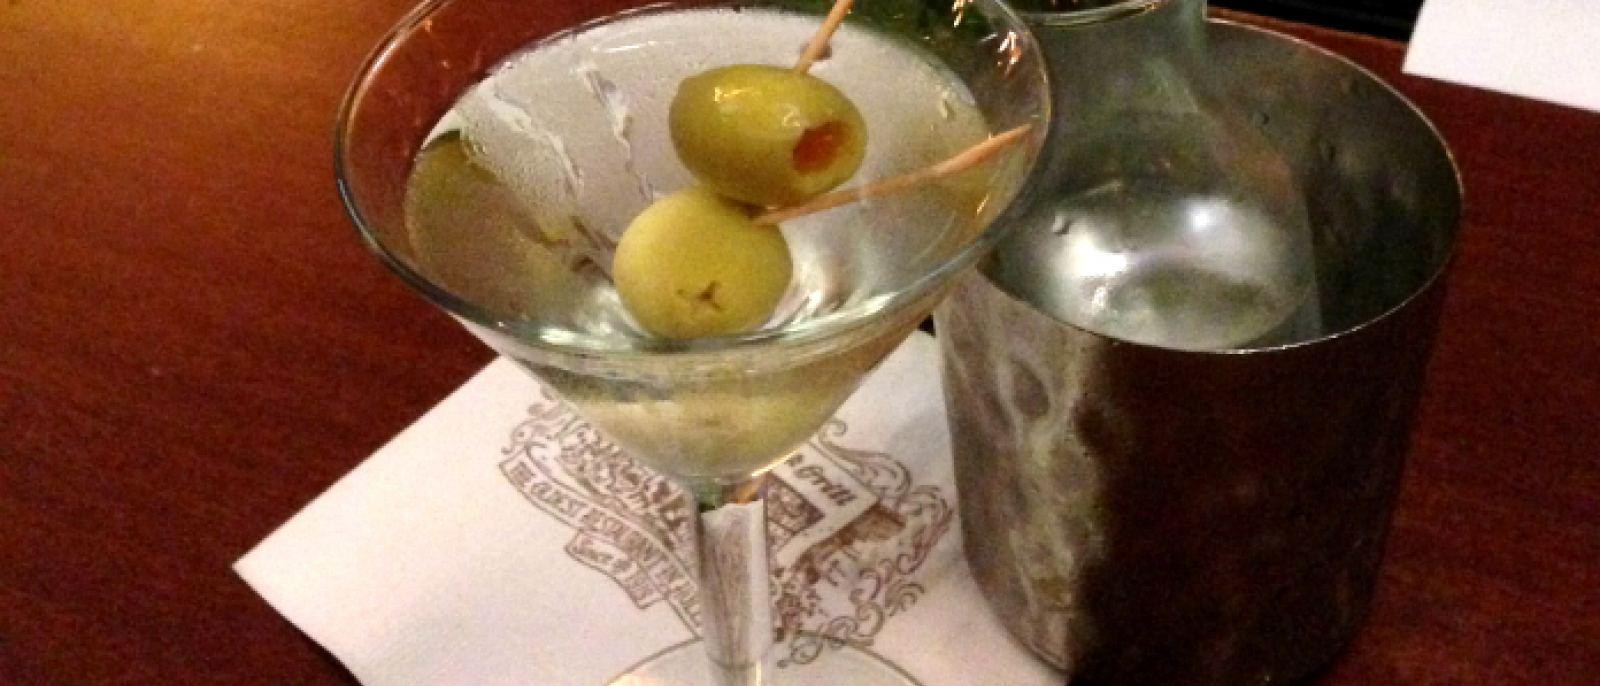 Gin Martini at Musso & Frank Grill